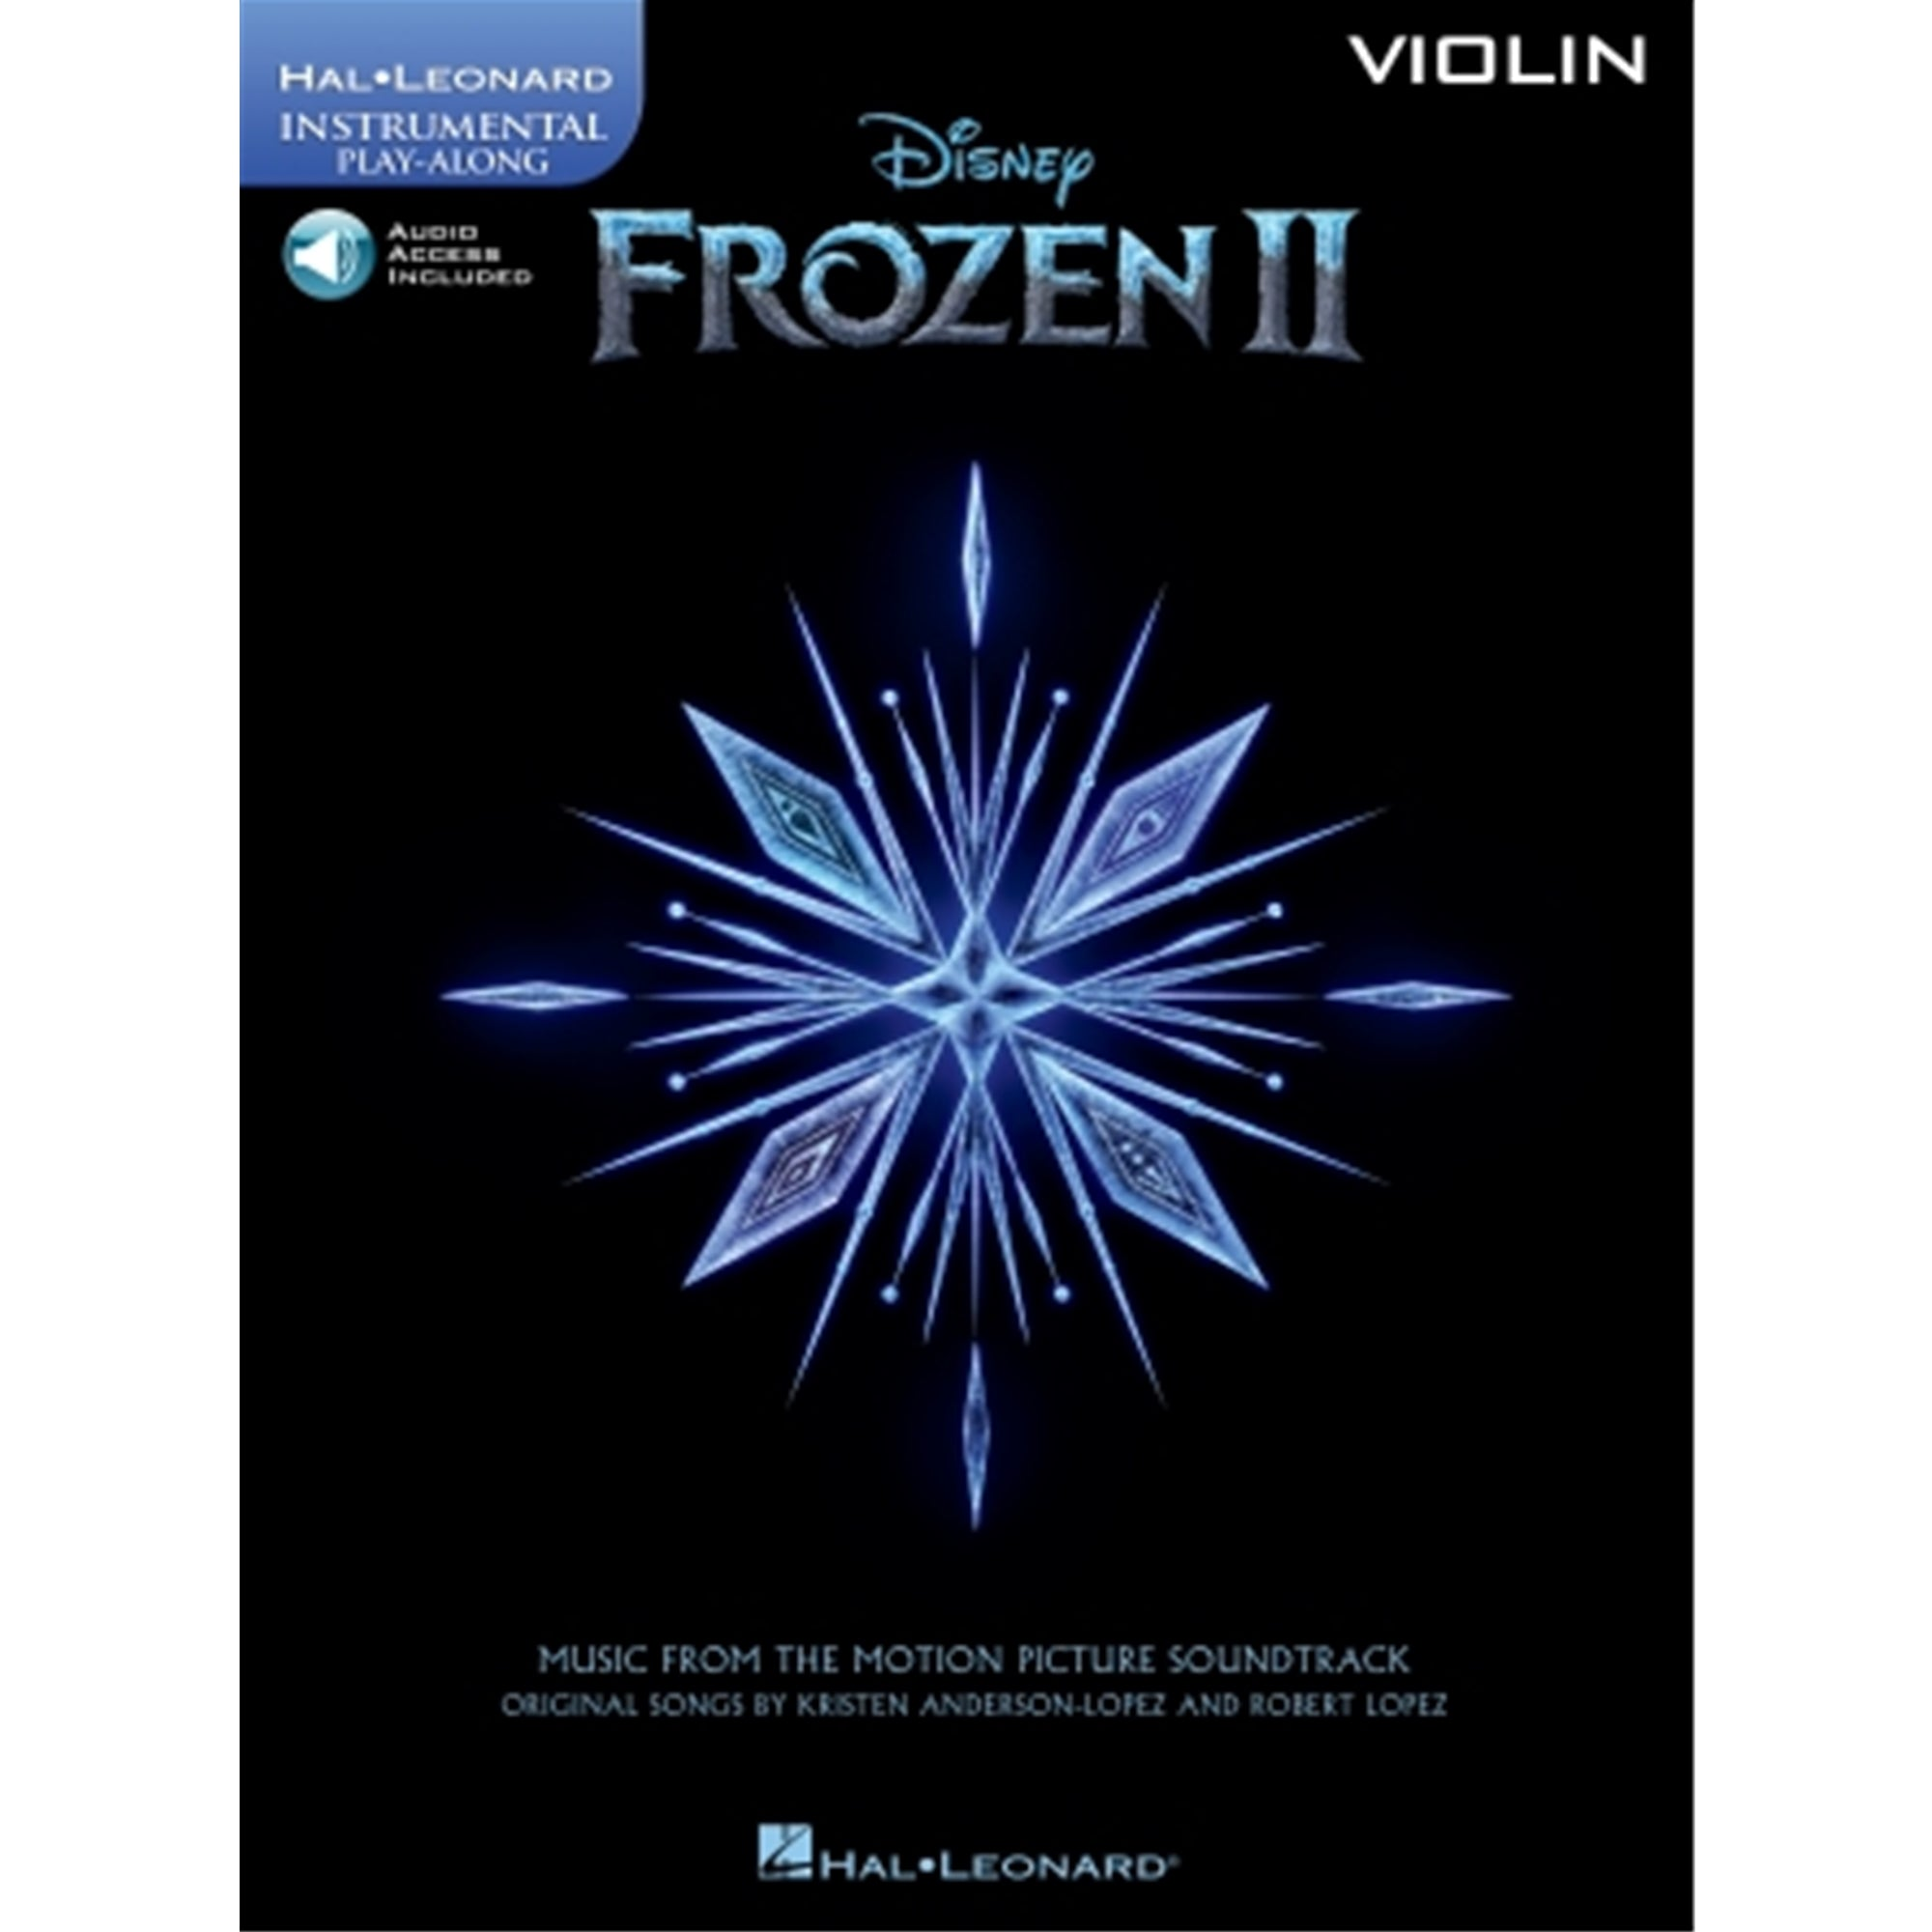 HAL LEONARD 329584 Frozen 2 Violin Play-Along